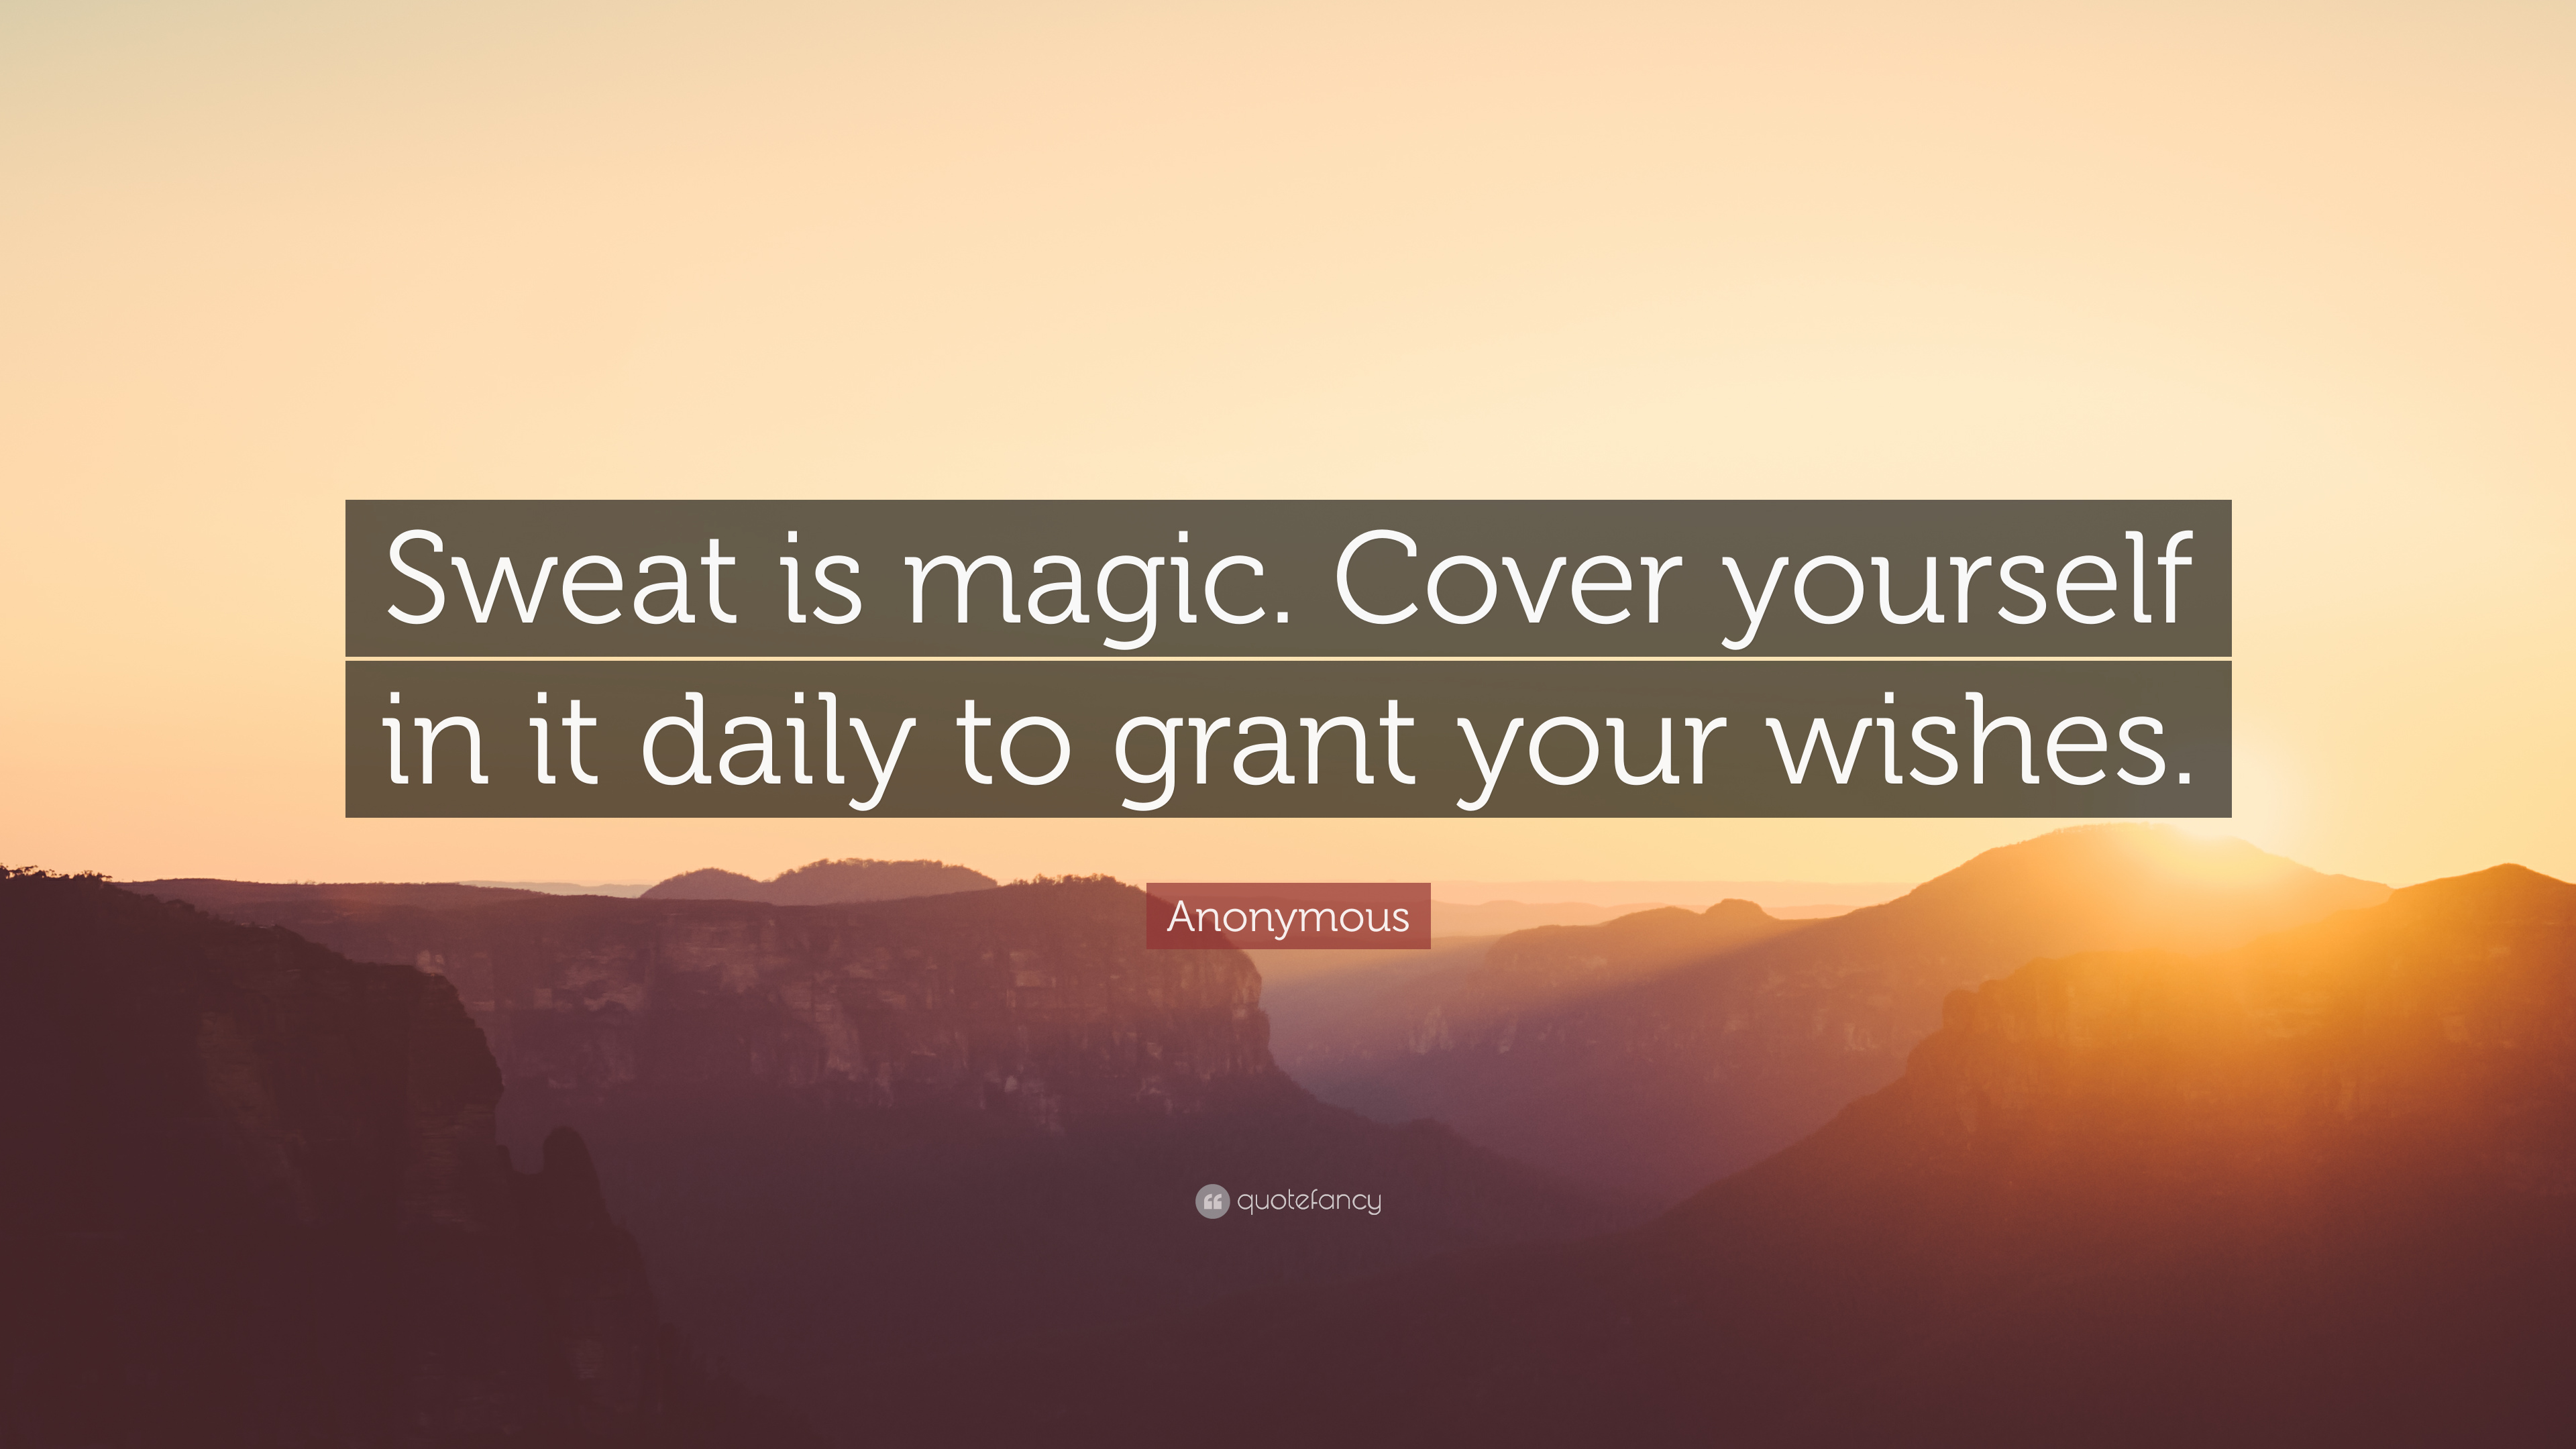 Image of: Sweat Anonymous Quote sweat Is Magic Cover Yourself In It Daily To Grant Your Quotefancy Anonymous Quote sweat Is Magic Cover Yourself In It Daily To